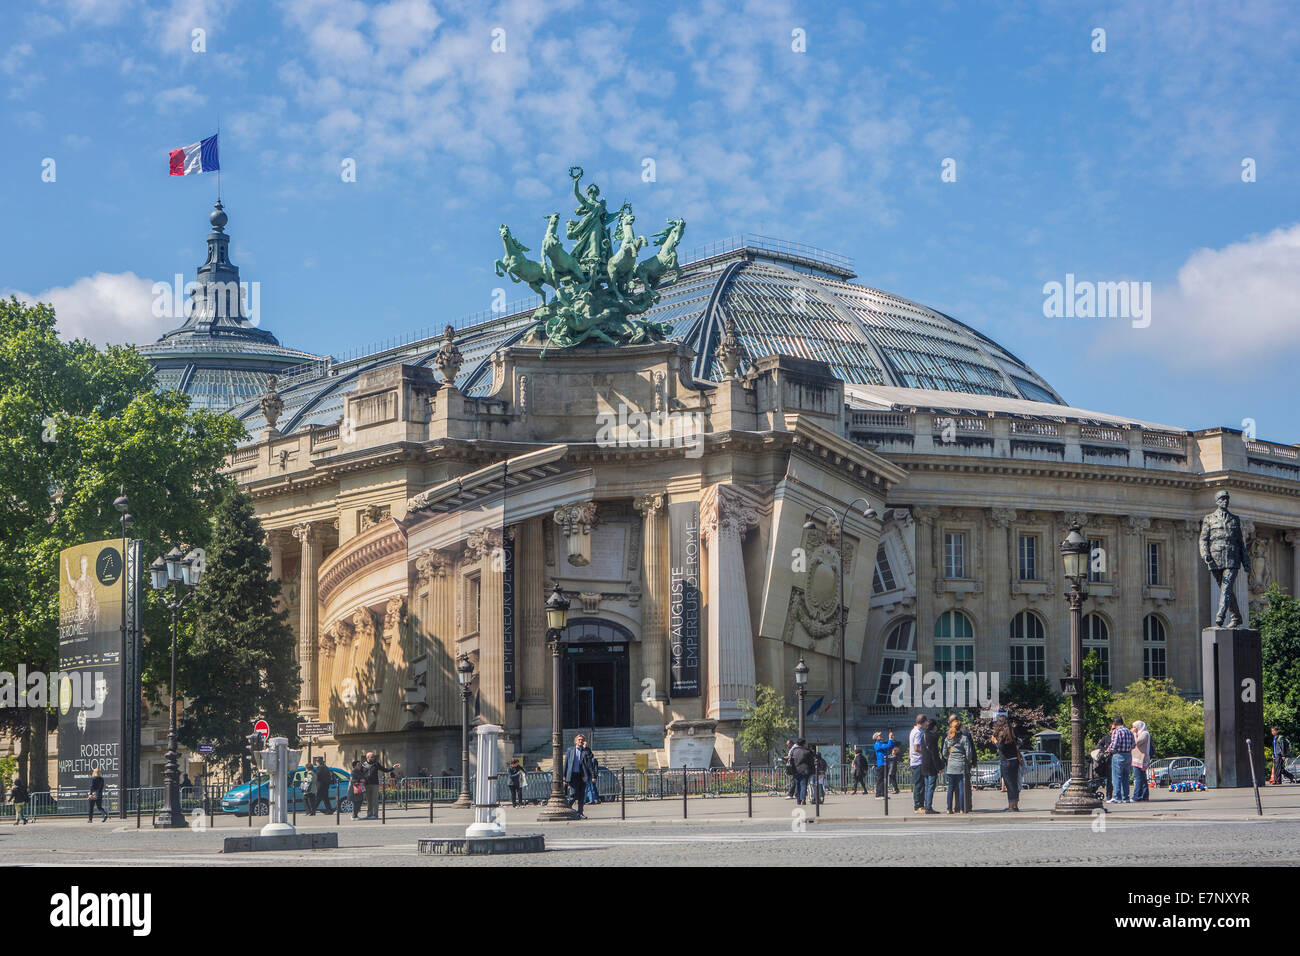 City entrance france grand palais paris architecture art stock photo royalty free image - Grand palais expo horaires ...